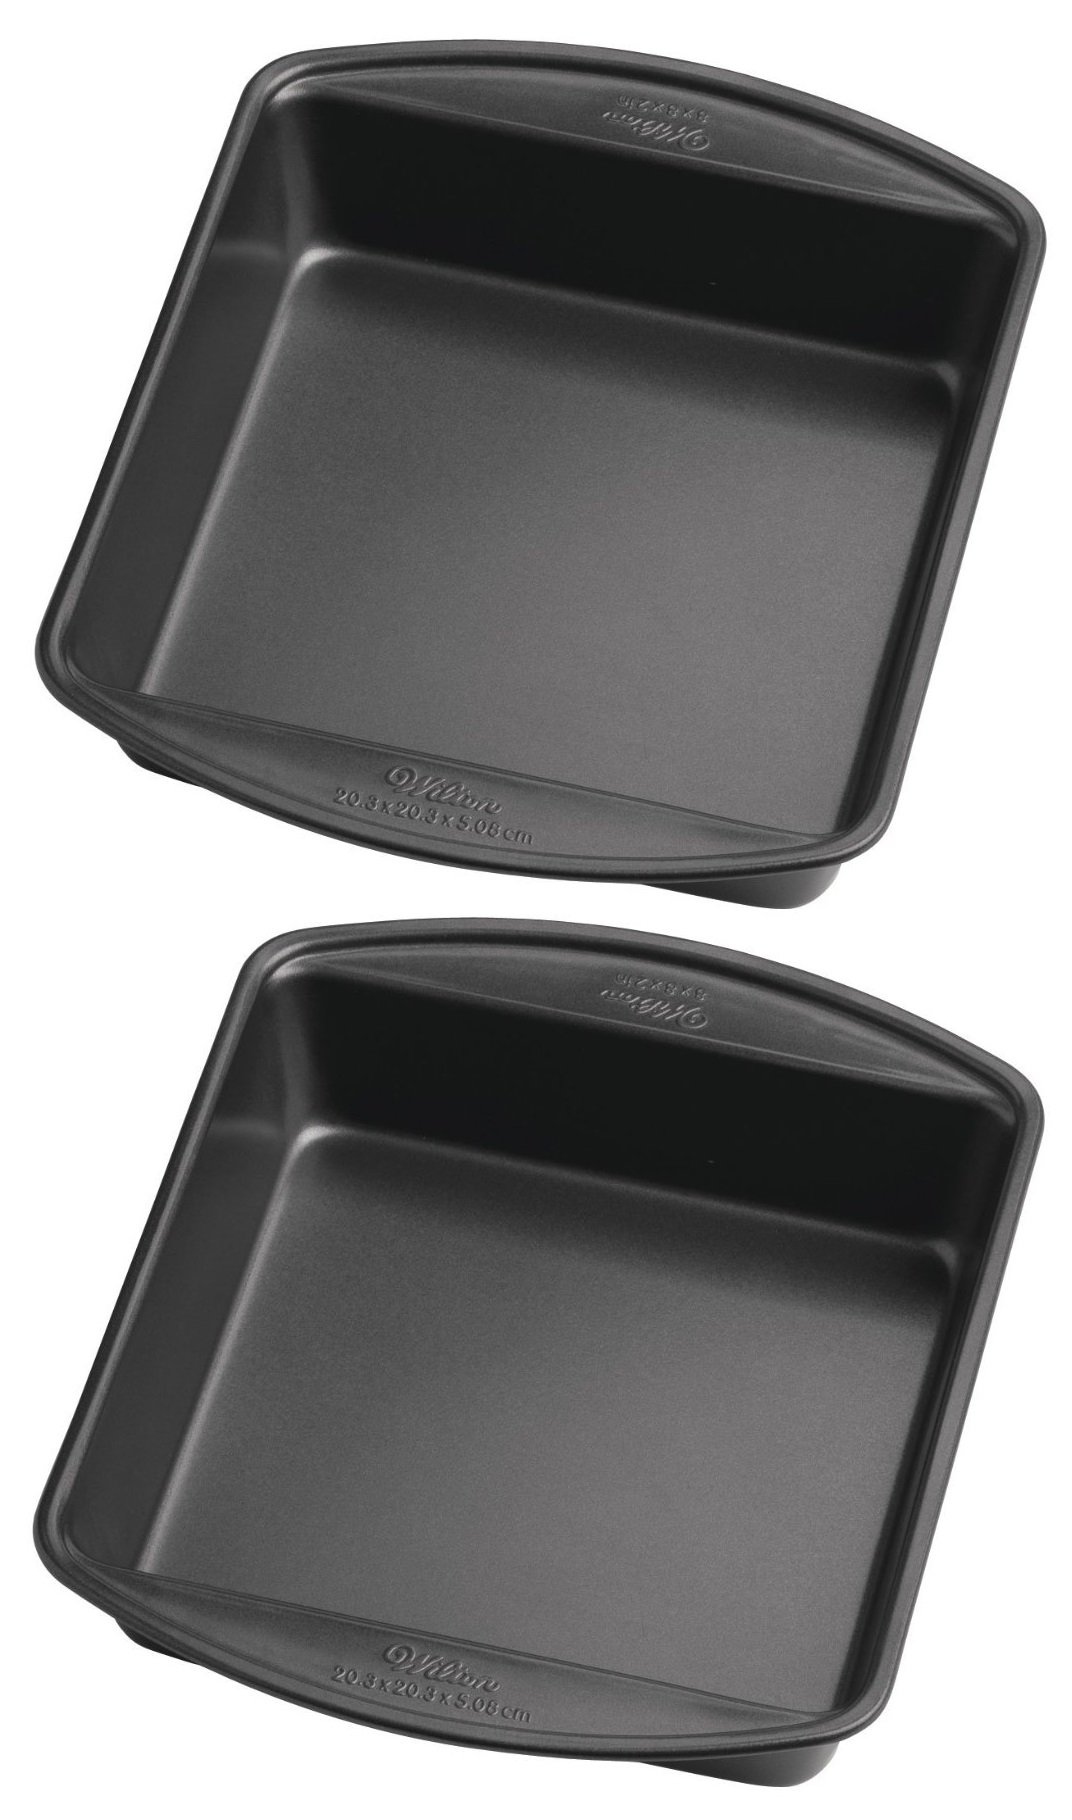 Wilton Perfect Results 8-Inch Square Cake Pan, Pack of 2 Pans